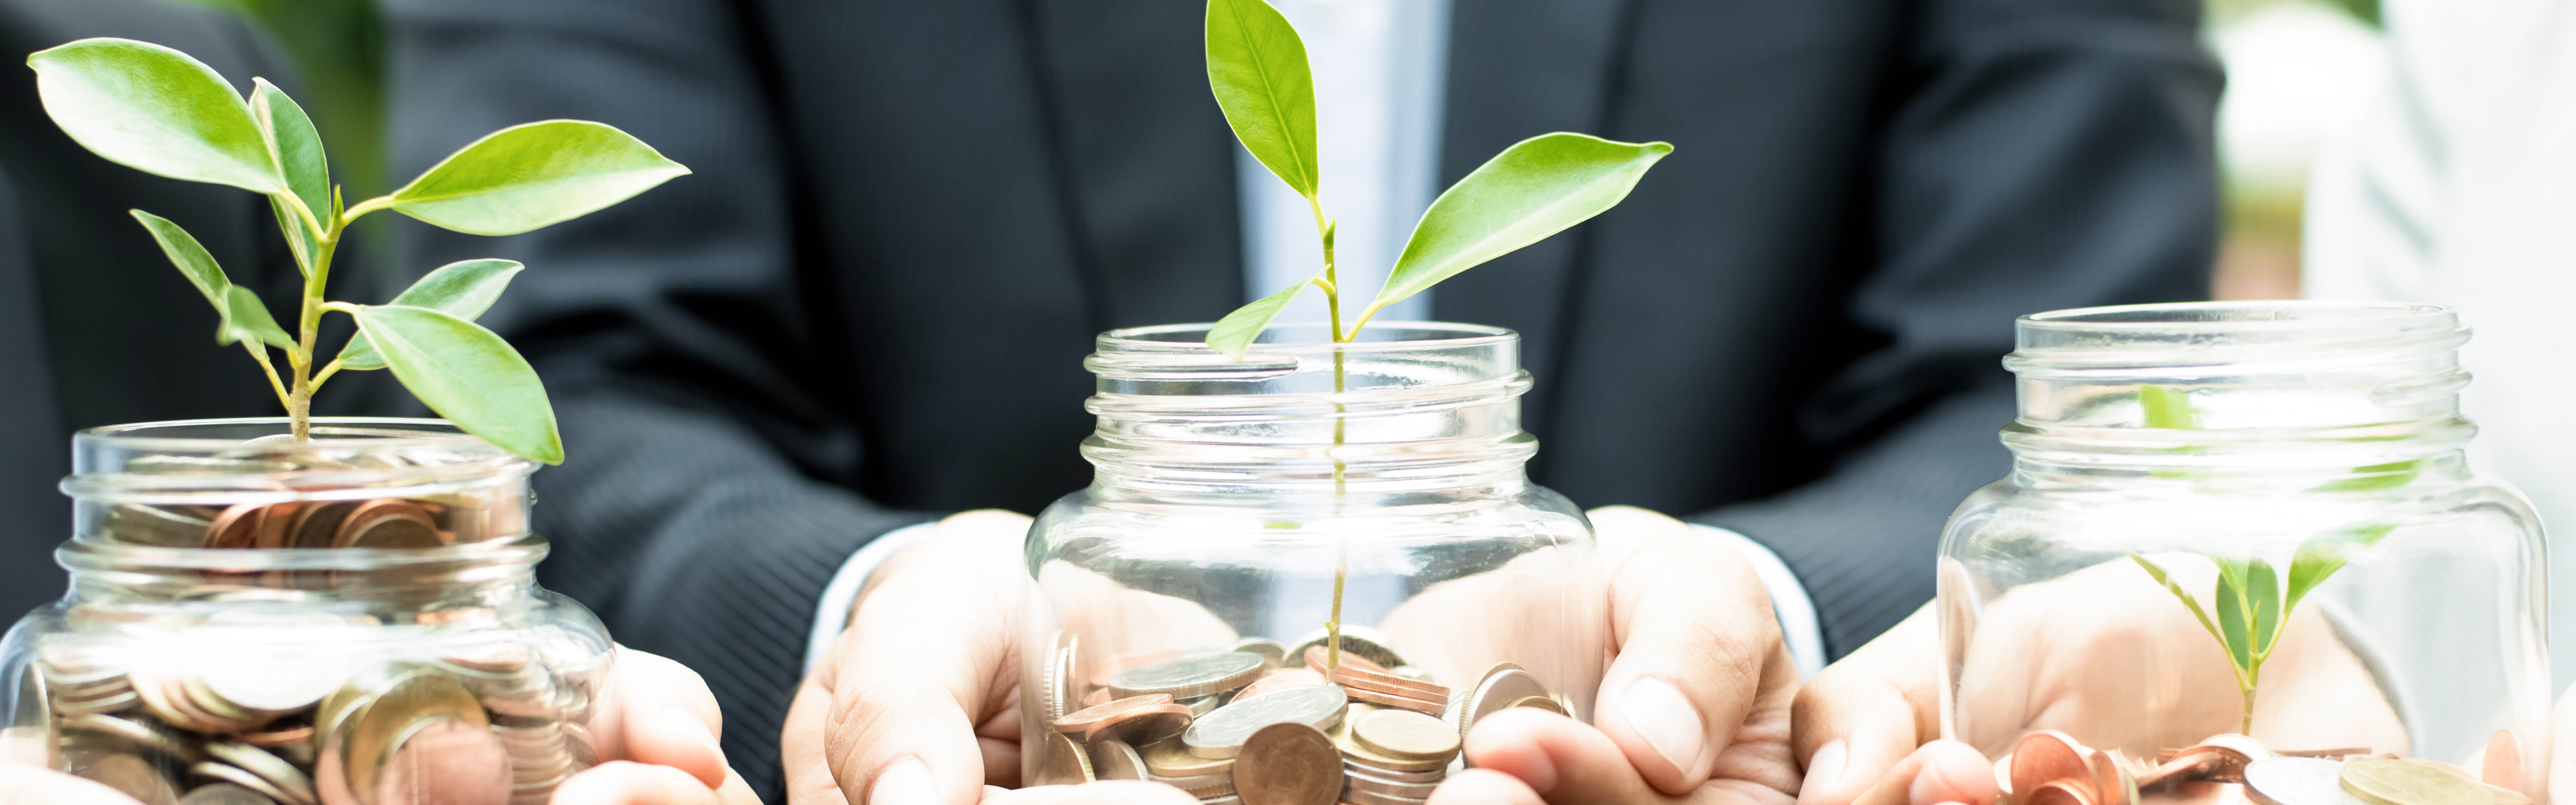 Photo of tree saplings growing out of mason jars. Rather than soil, the mason jars have coins in them. This represents how the areas of giving can flourish when we all support NOSM's goals.